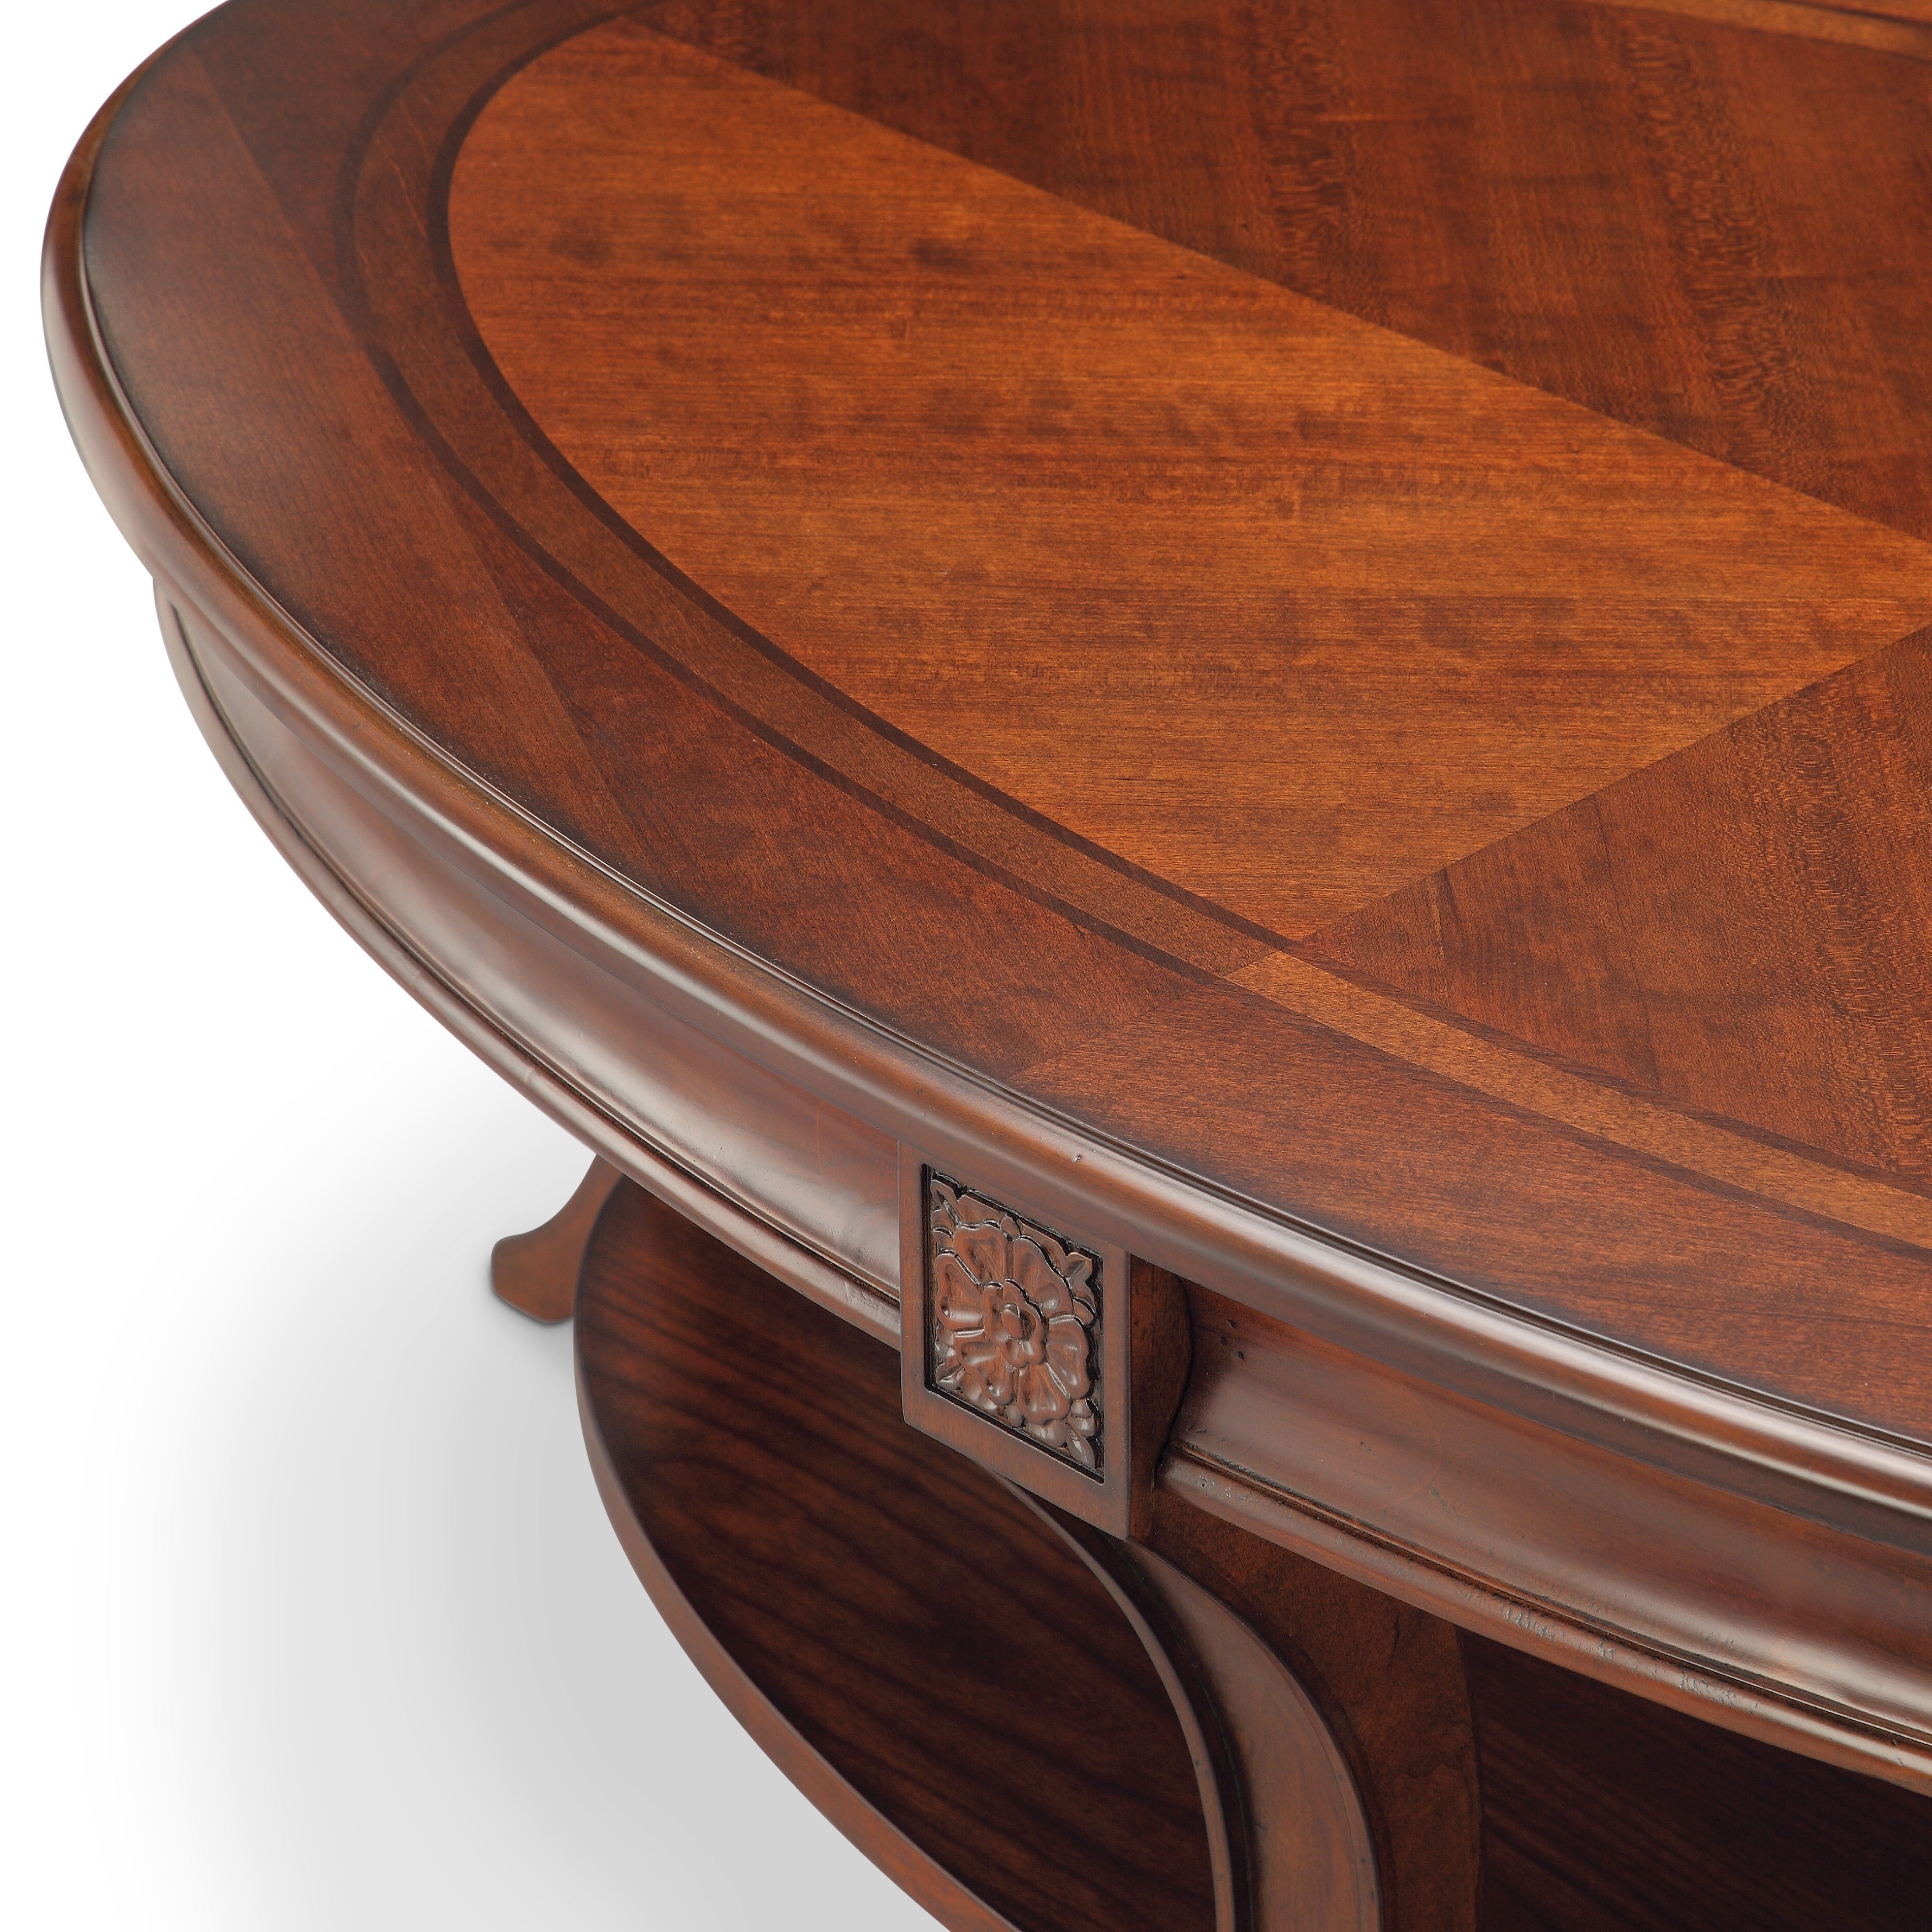 Winslet Cherry Finish Wood Oval Coffee Table With Casters For Best And Newest Winslet Cherry Finish Wood Oval Coffee Tables With Casters (View 2 of 20)